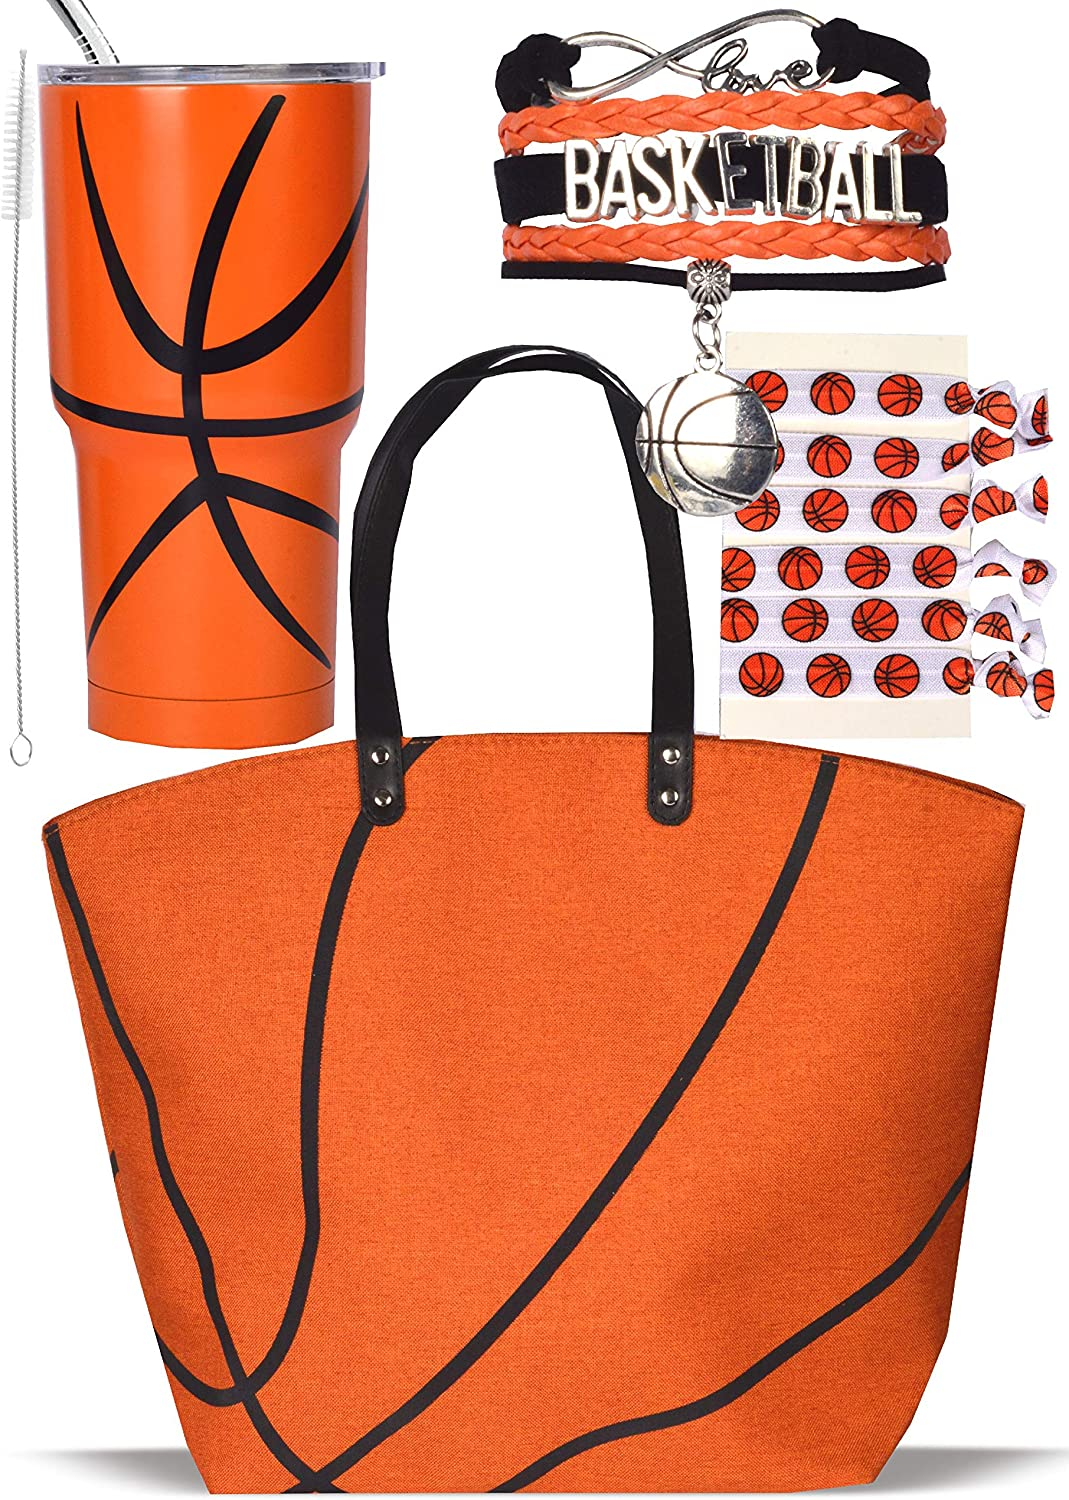 Basketball mom canvas tote bags